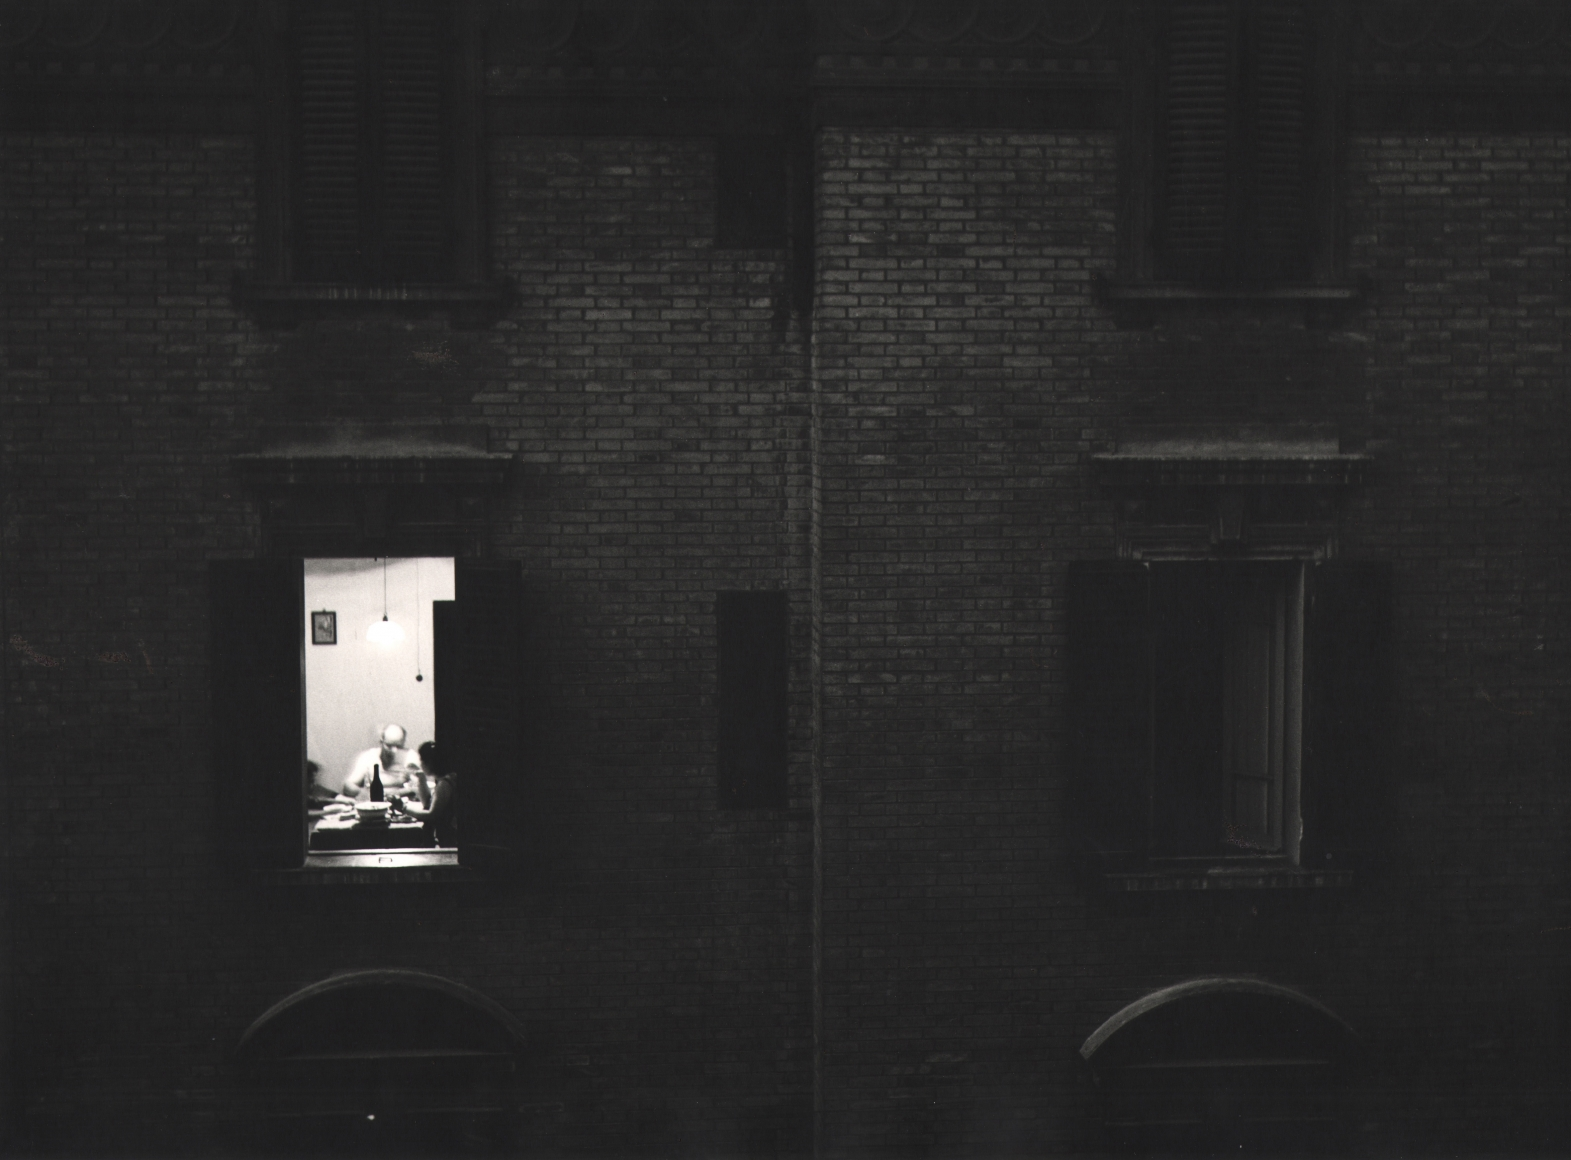 Nino Migliori, Summer evening from 'People of Emilia,' 1953. Exterior view of an apartment building. One window is lit and a family is seated at the dinner table.